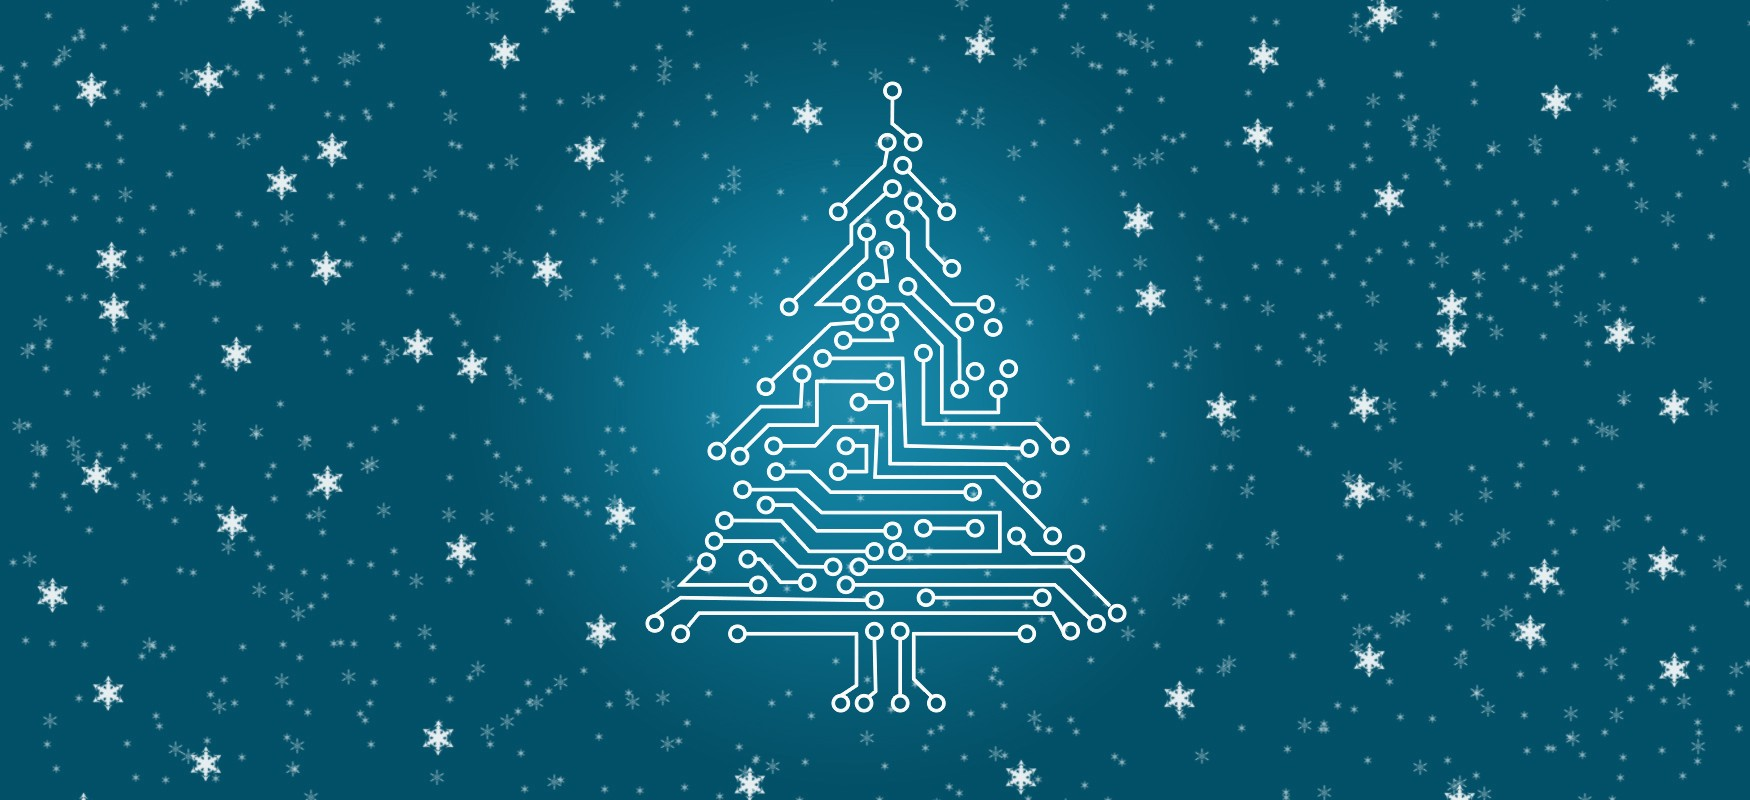 Happy Holidays from Swarming Technology!